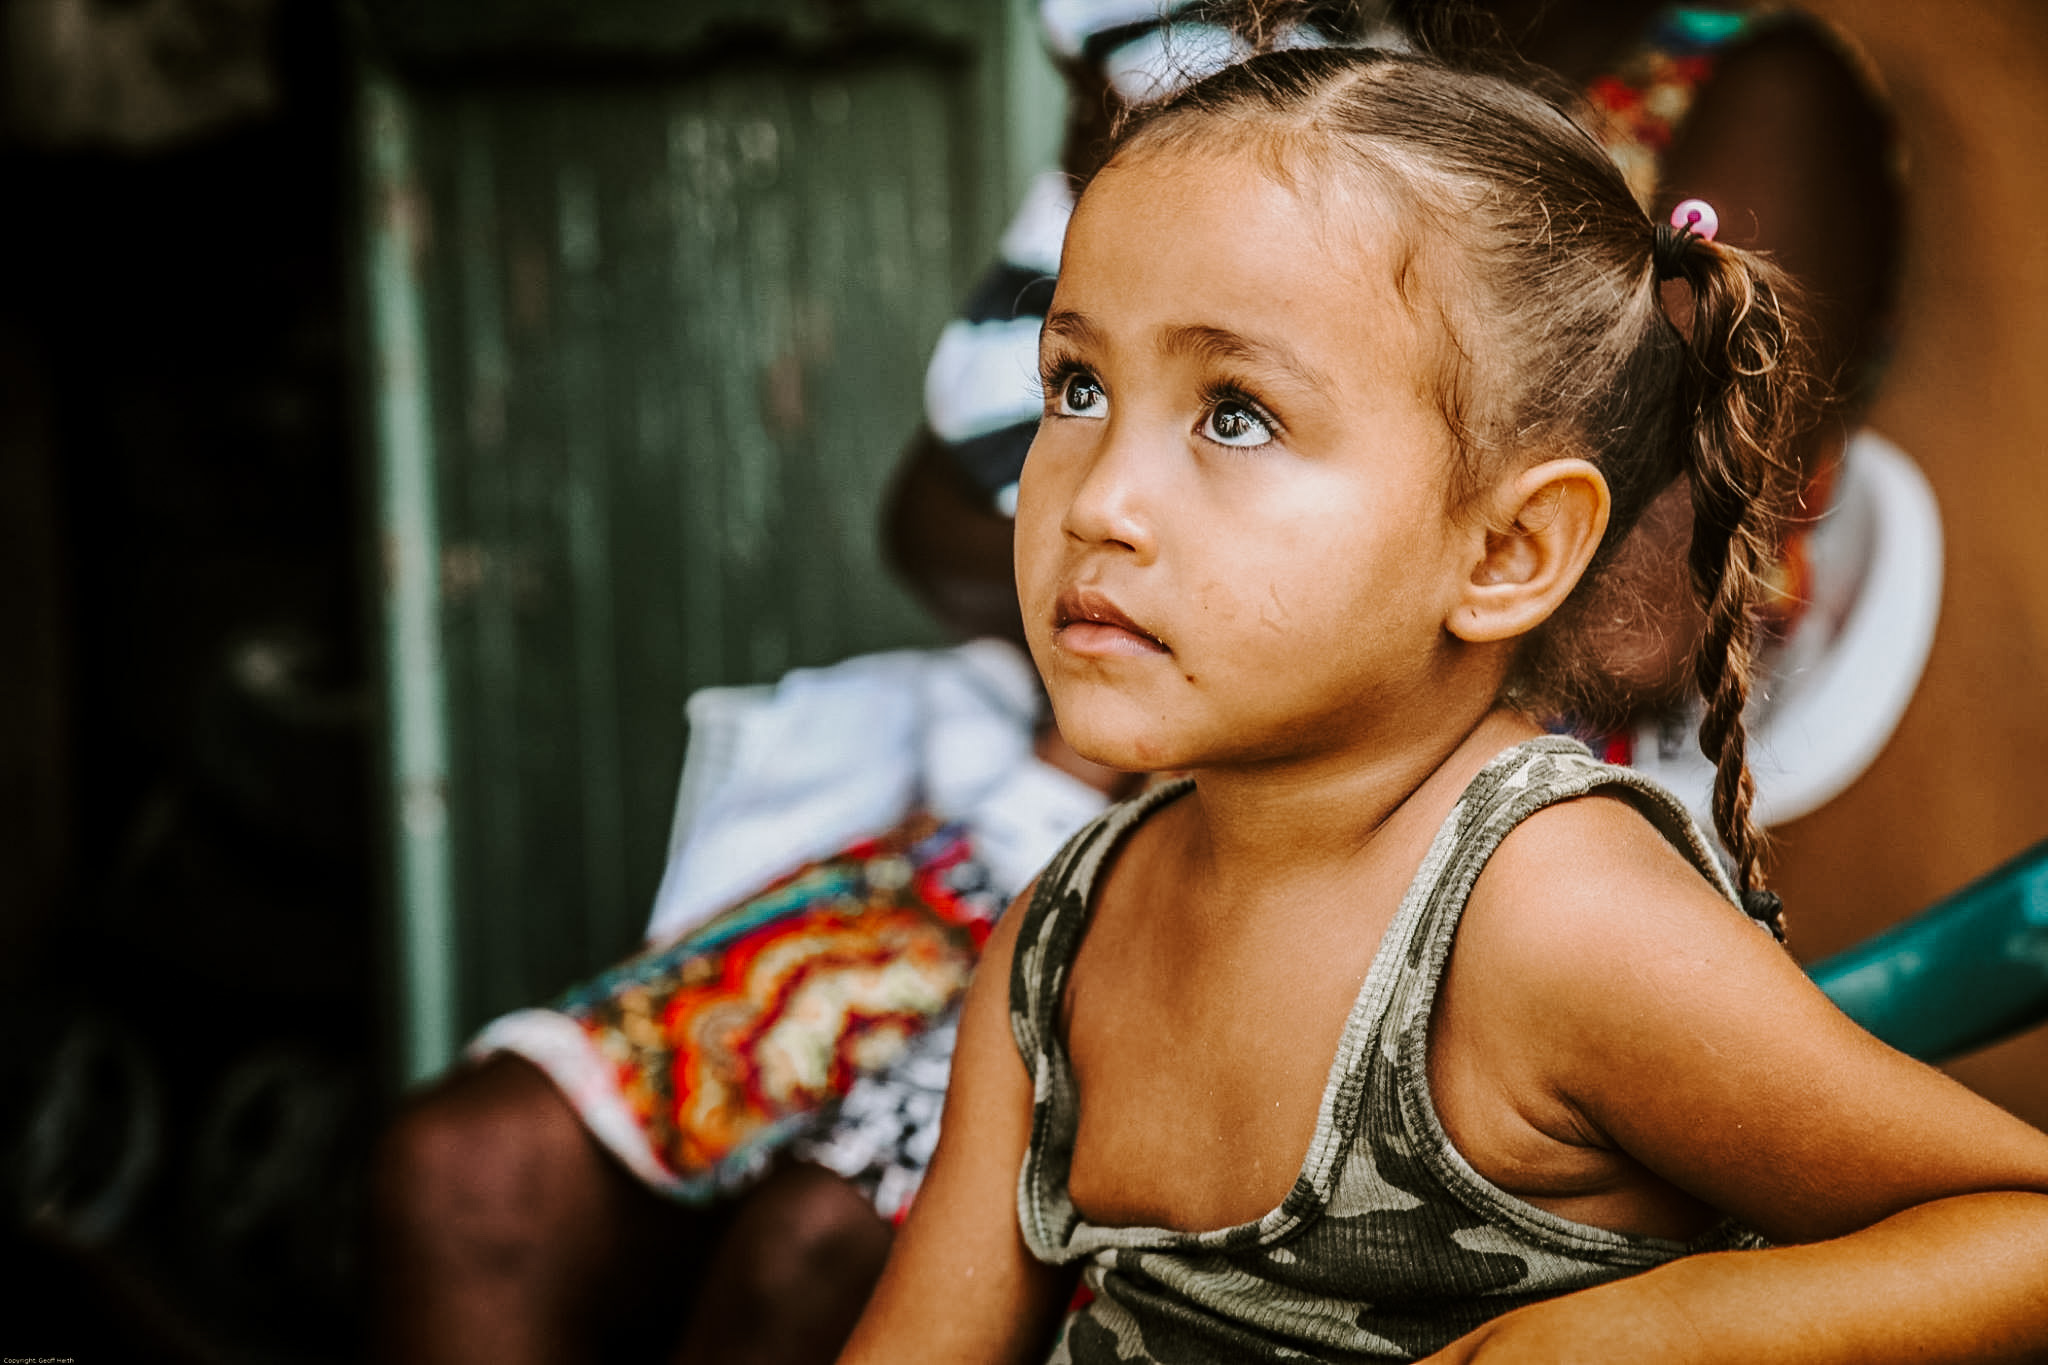 Photo of a little girl from the Dominican Republic